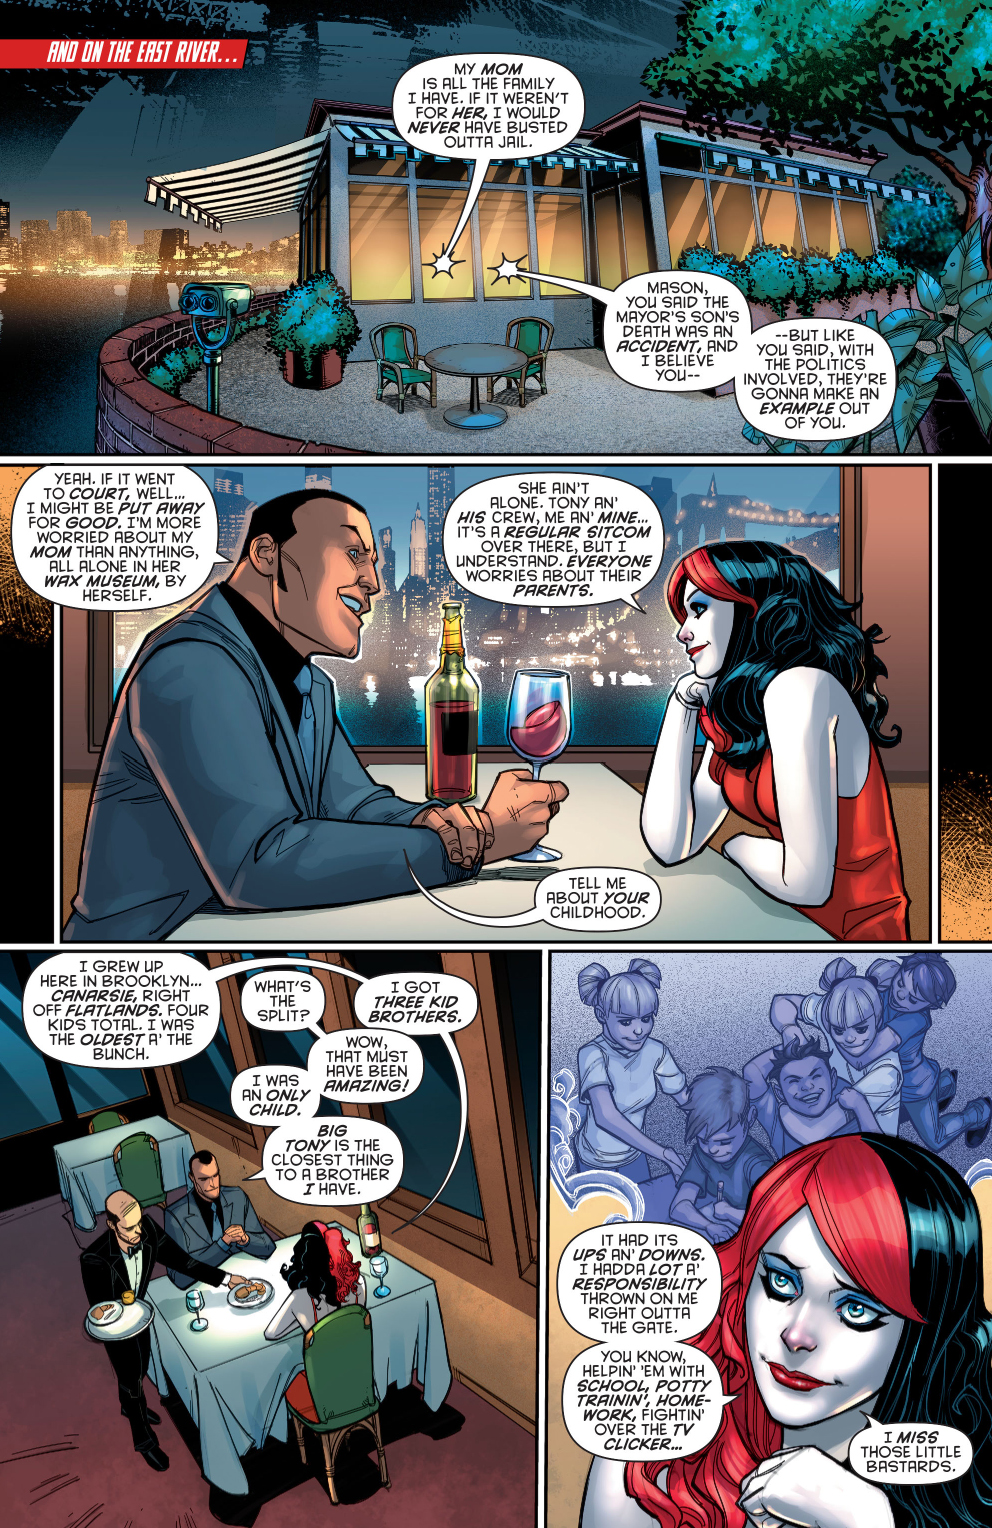 harley quinn talks about her brothers